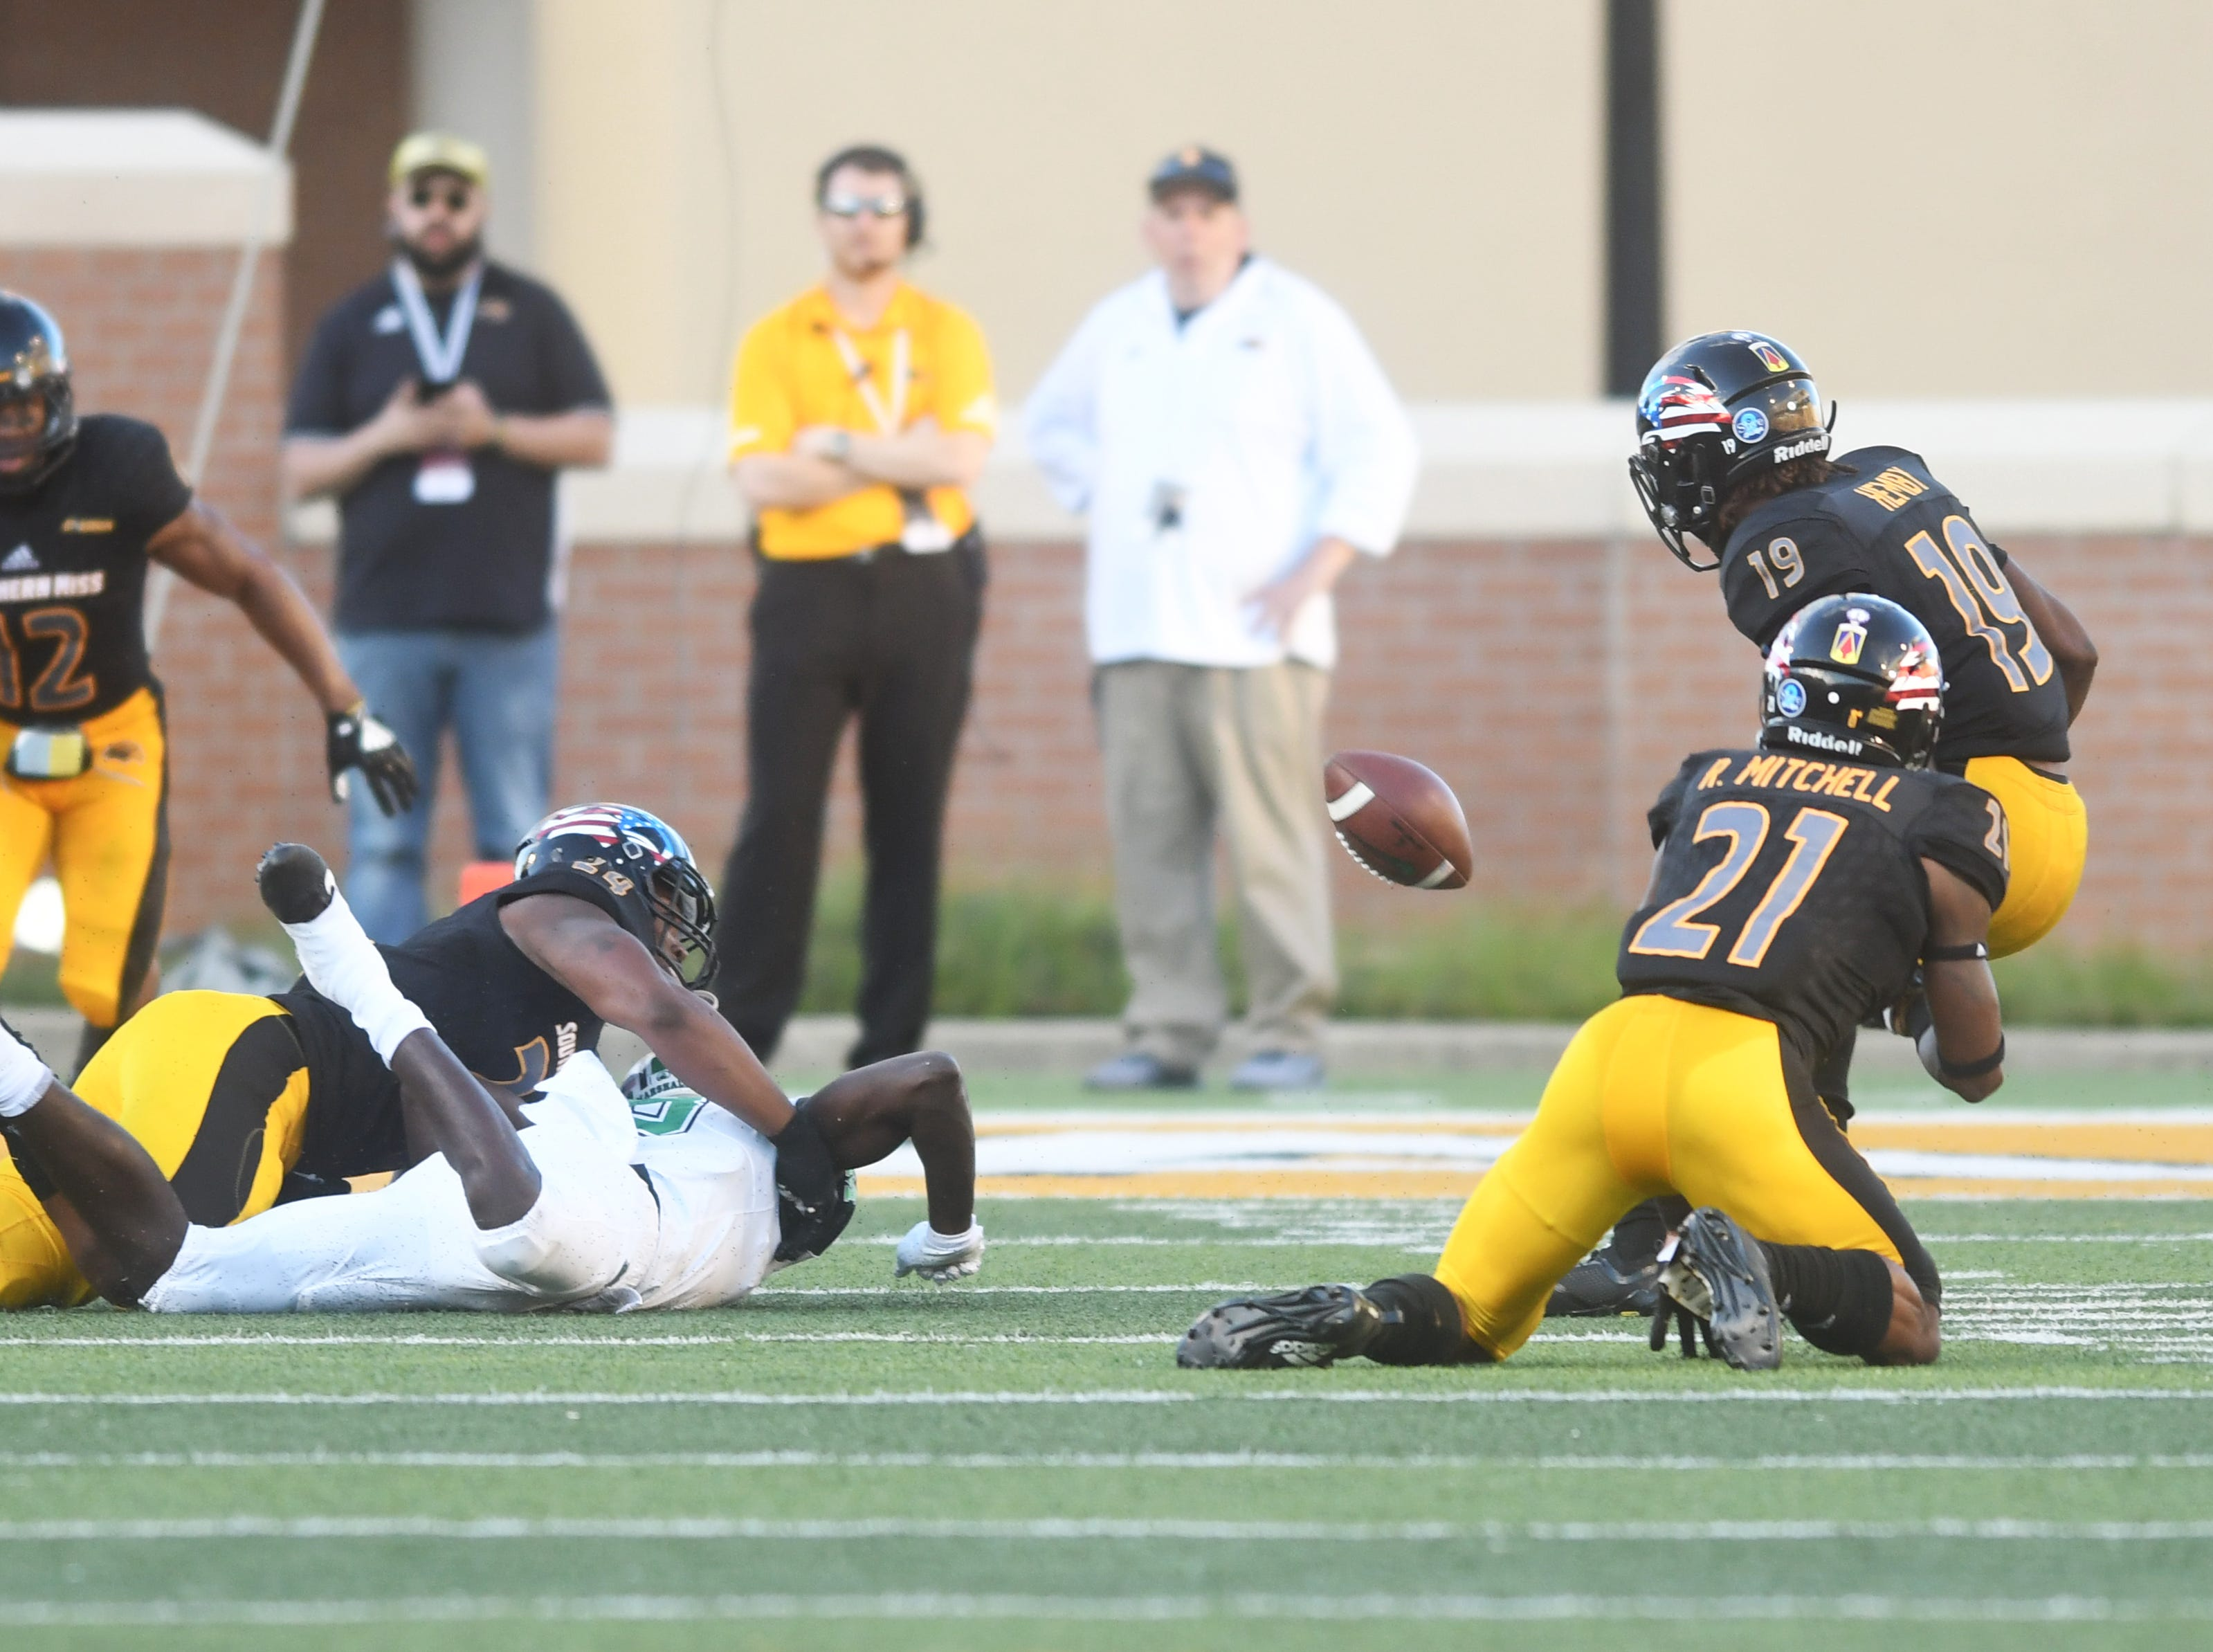 Southern Miss defensive players force a fumble in a game against Marshall at M.M. Roberts Stadium on Saturday, November 3, 2018.